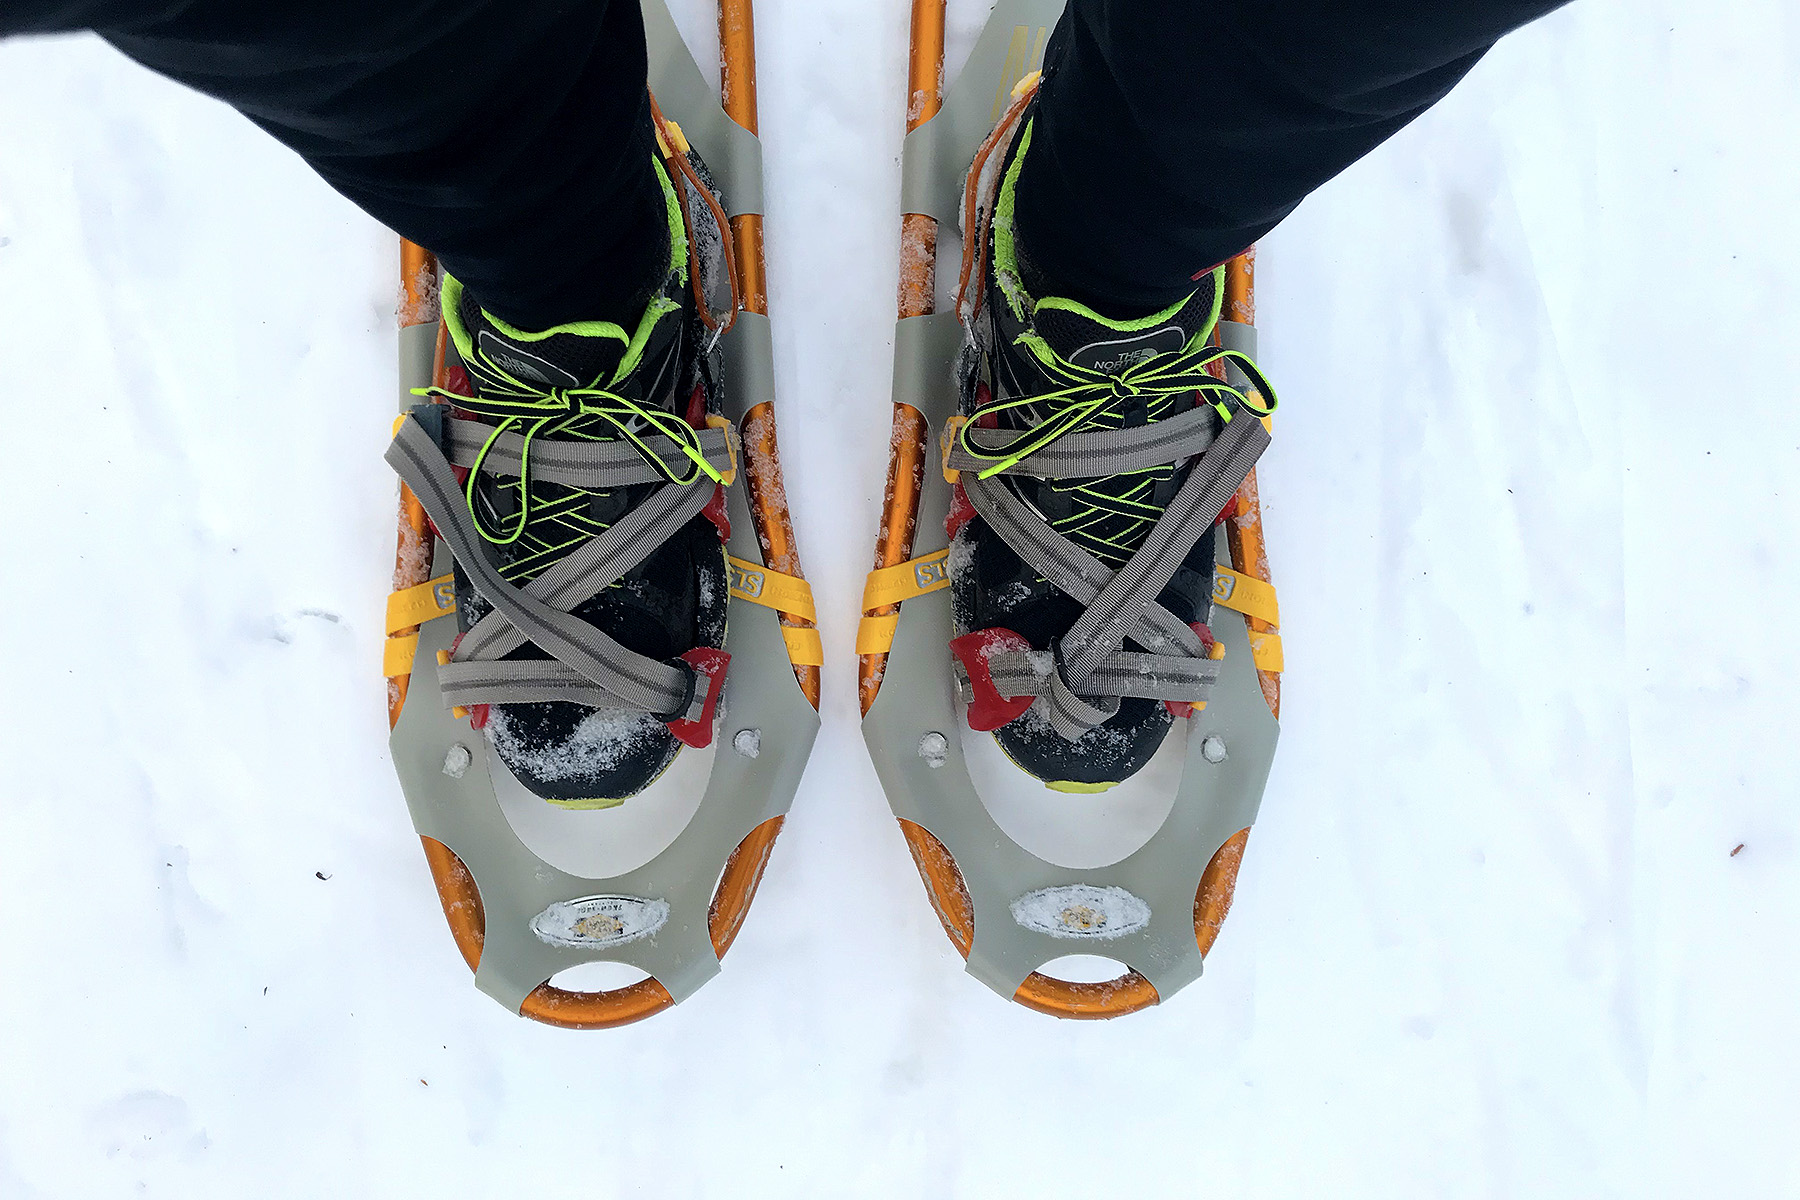 Ready to go in my Atlas Snowshoes